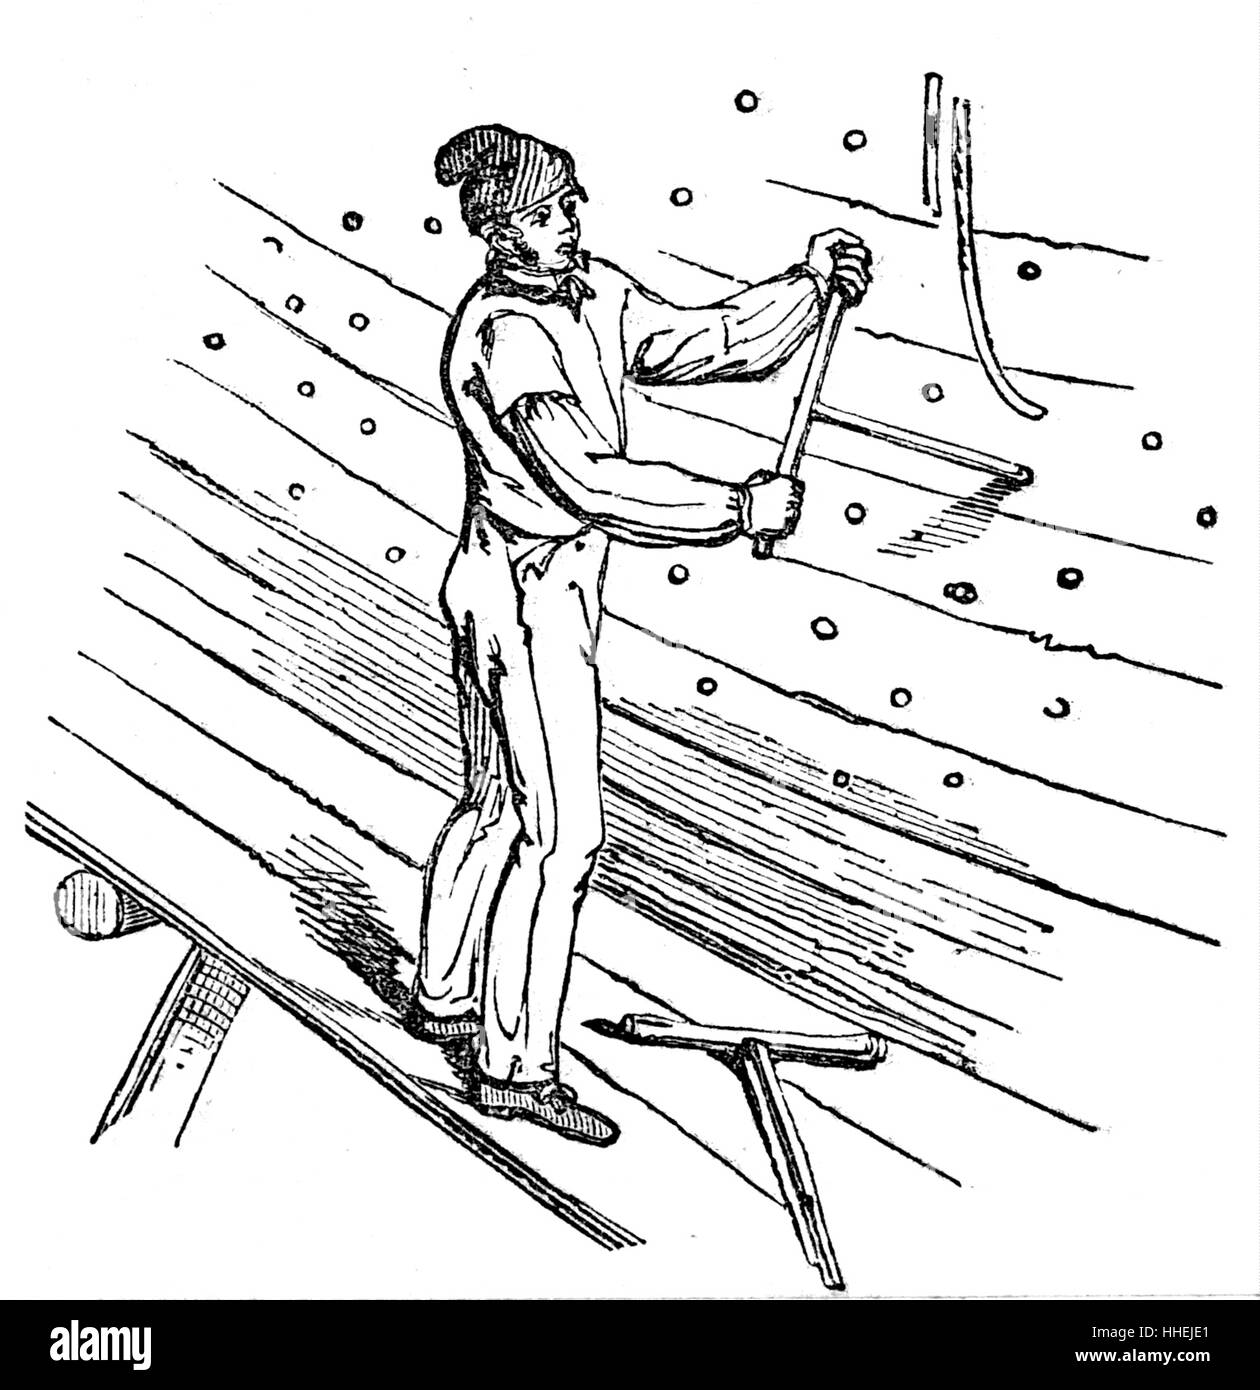 Illustration depicting the boring of holes in the planks to receive treenails - Stock Image